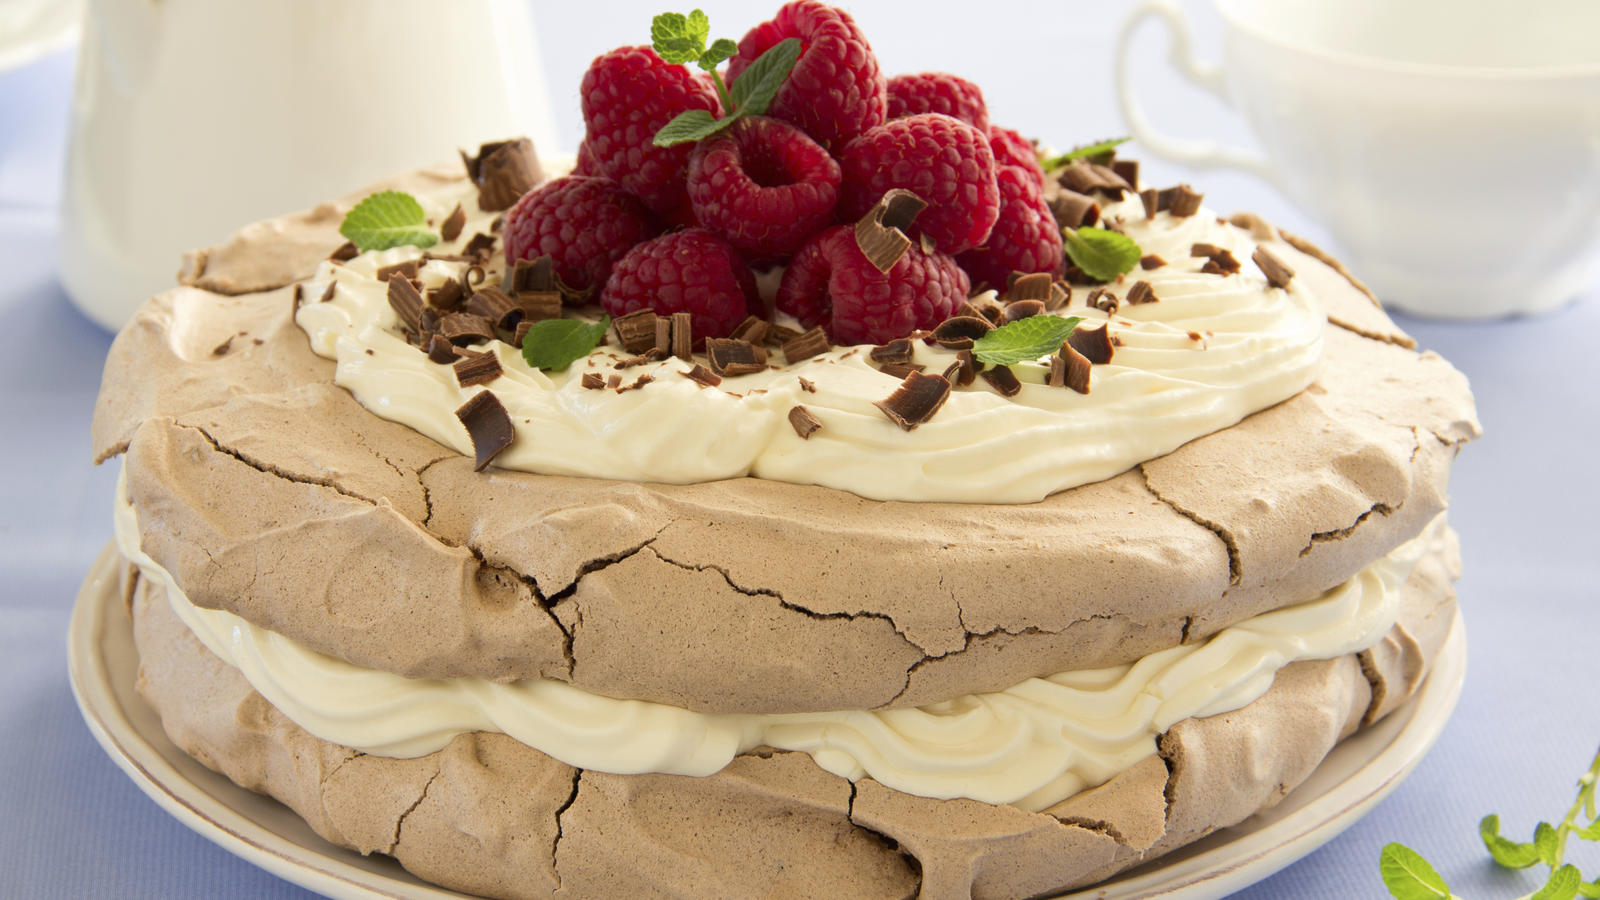 hazelnut meringue torte filled with raspberries and cream